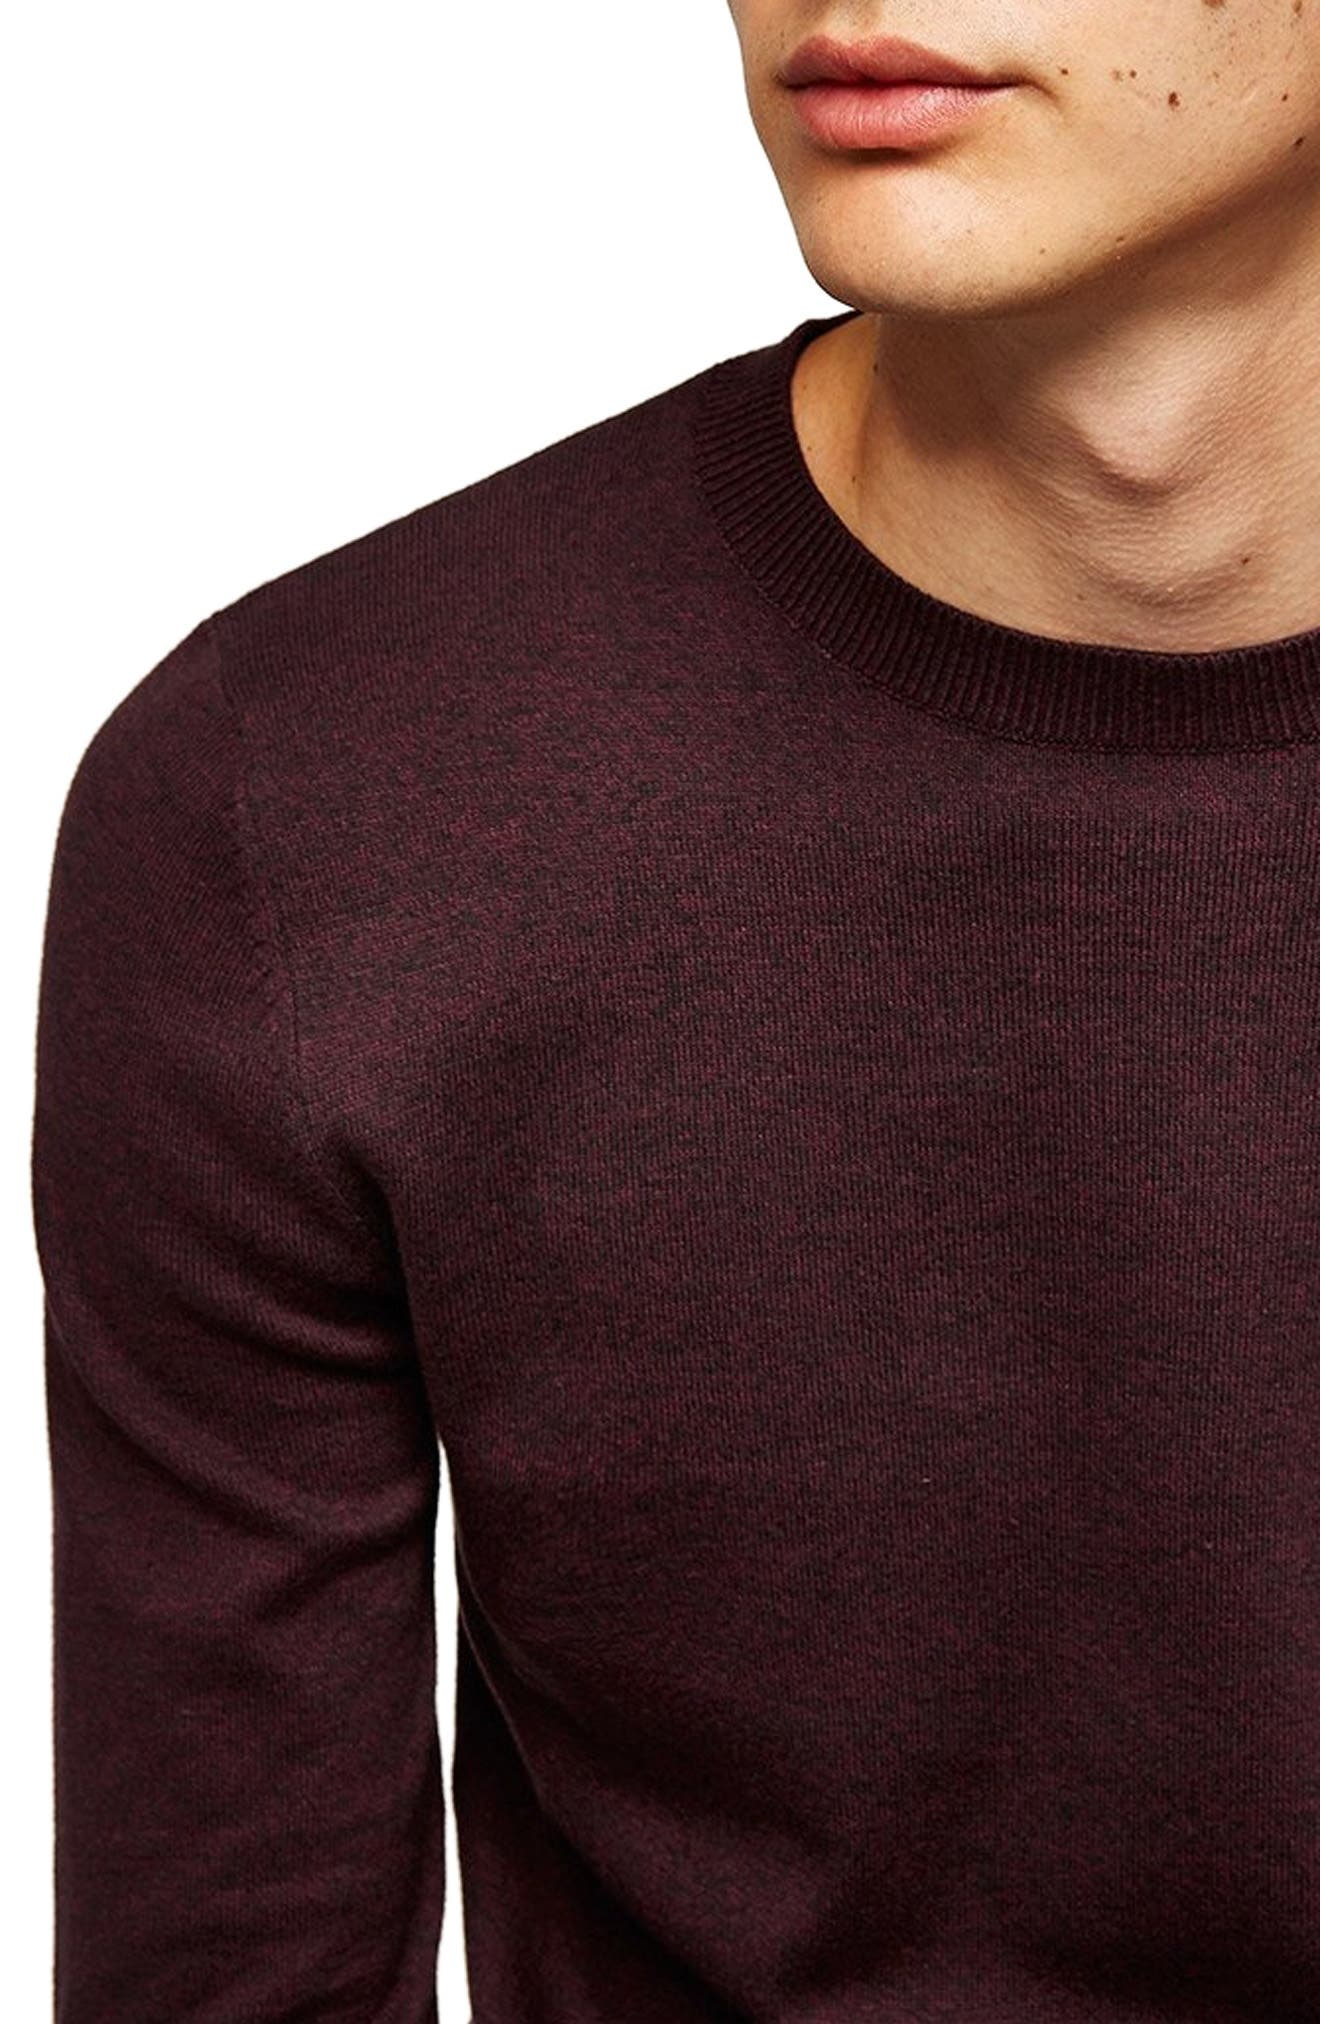 Classic Crewneck Sweater,                             Alternate thumbnail 3, color,                             BURGUNDY